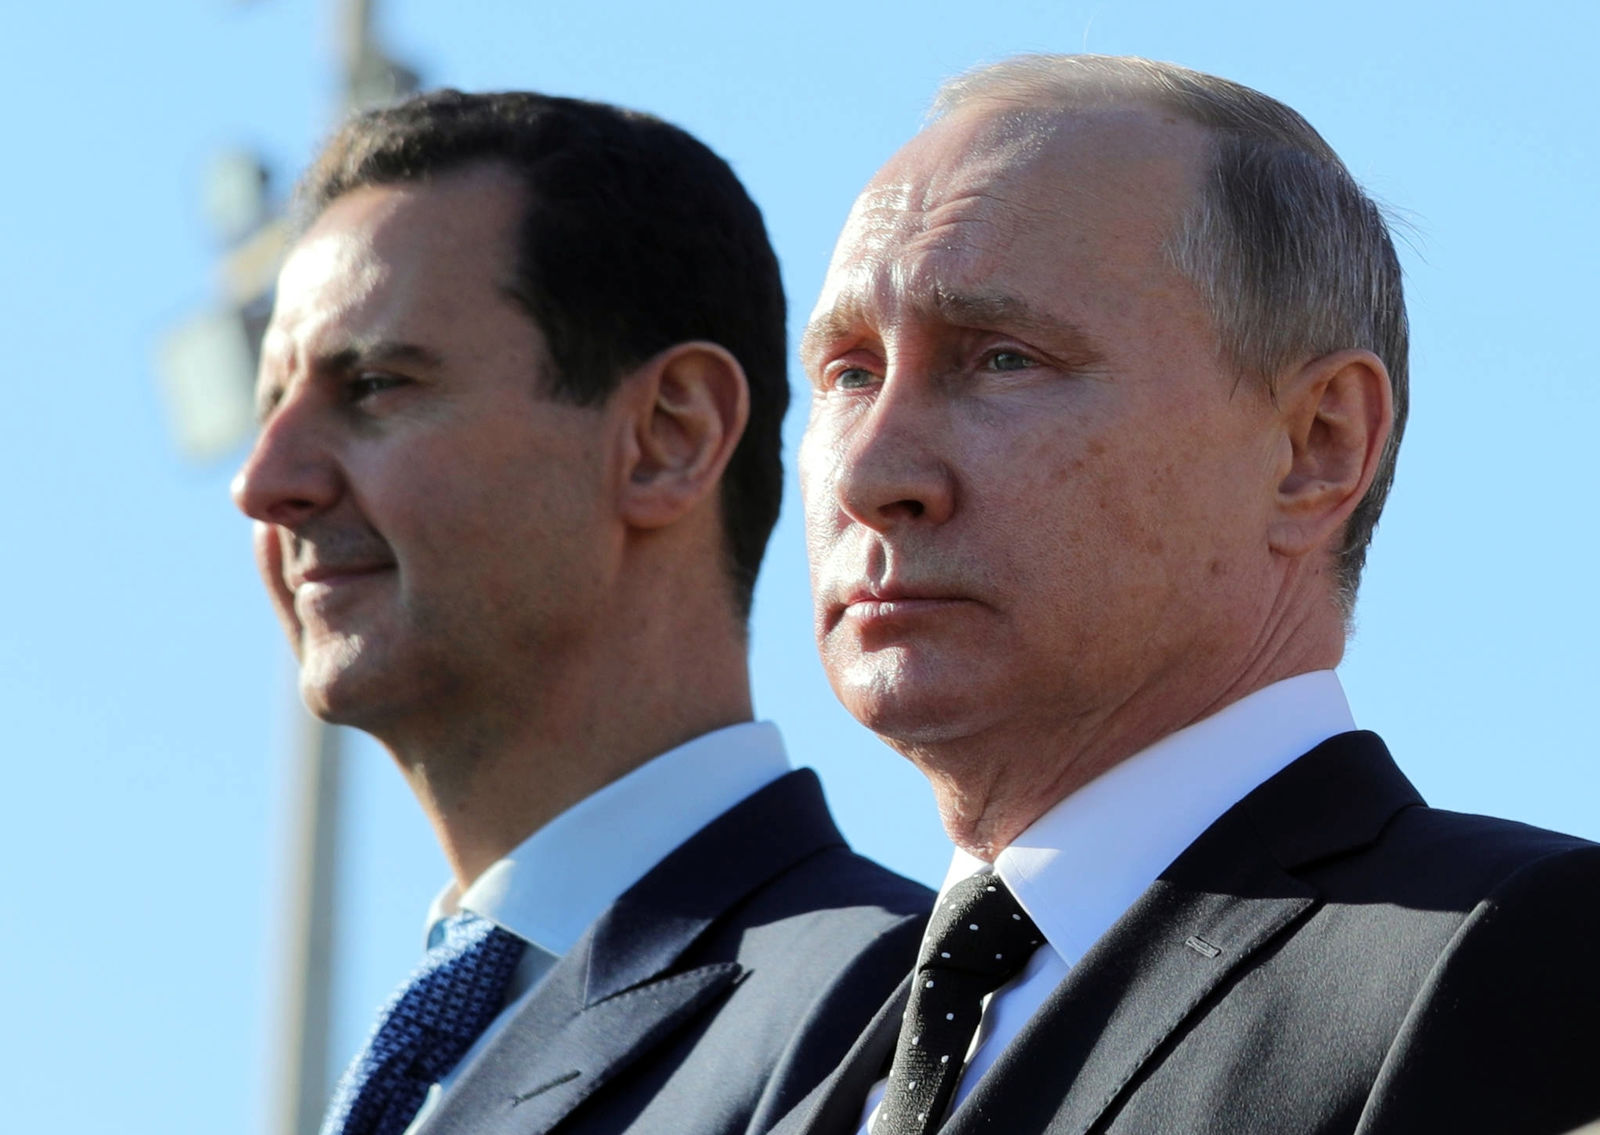 FILE - This Dec. 11, 2017 file photo, shows Russian President Vladimir Putin, right, and Syrian President Bashar Assad watching troops march at the Hemeimeem air base in Syria. Russia and Iran have been strong backers of Assad, helping him in his bid to regain control of territories. (Mikhail Klimentyev, Sputnik, Kremlin Pool Photo via AP, File)